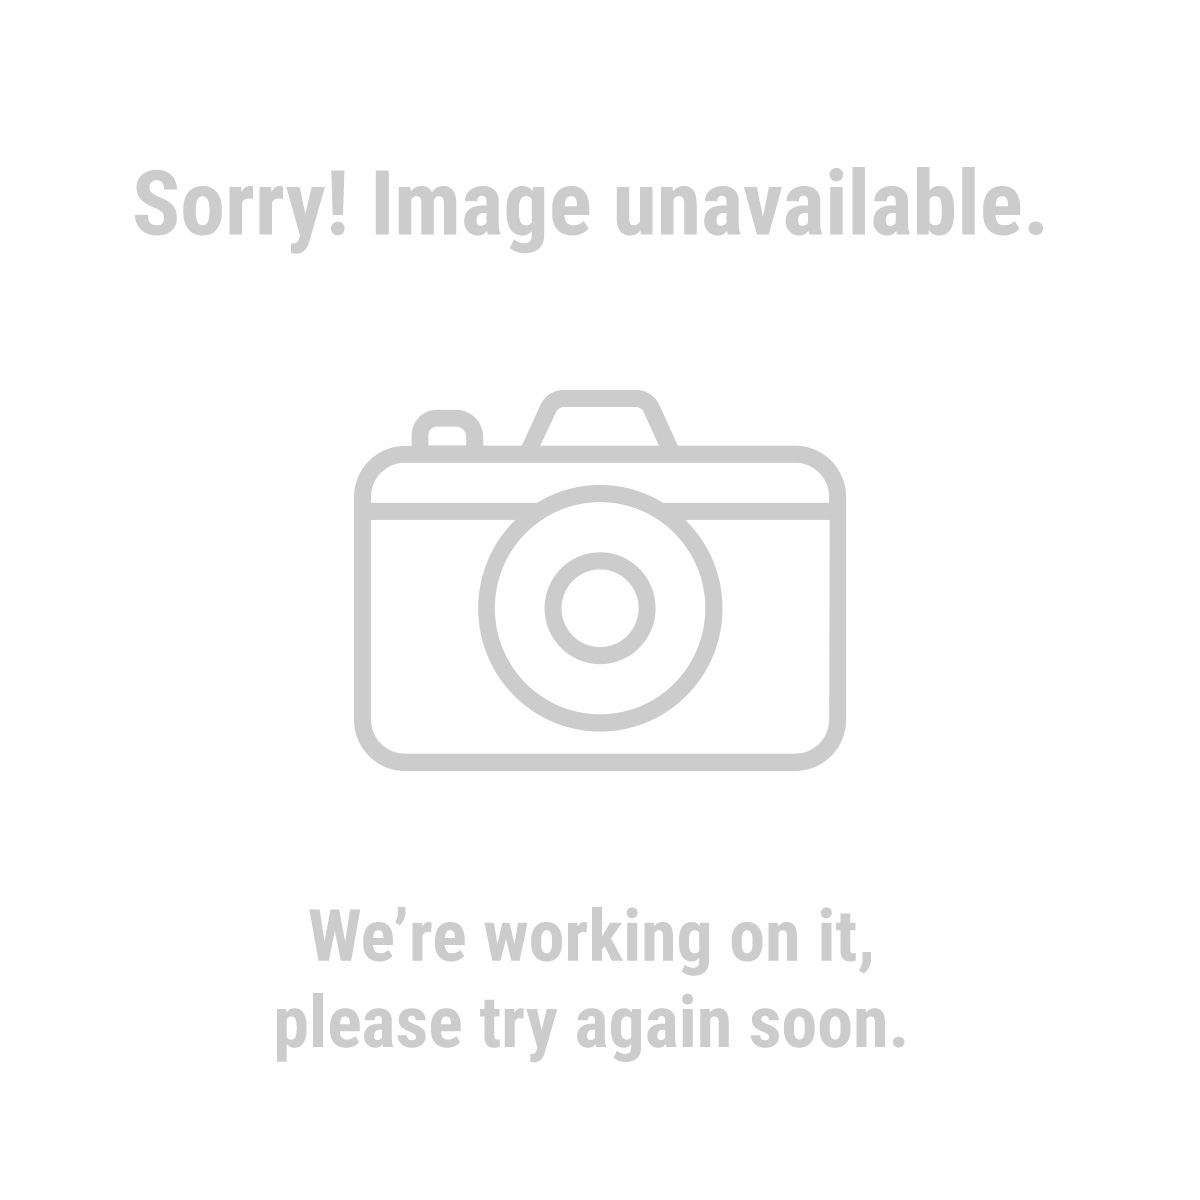 Haul-Master 93525 1000 Lb. Capacity Polypropylene Mover's Dolly